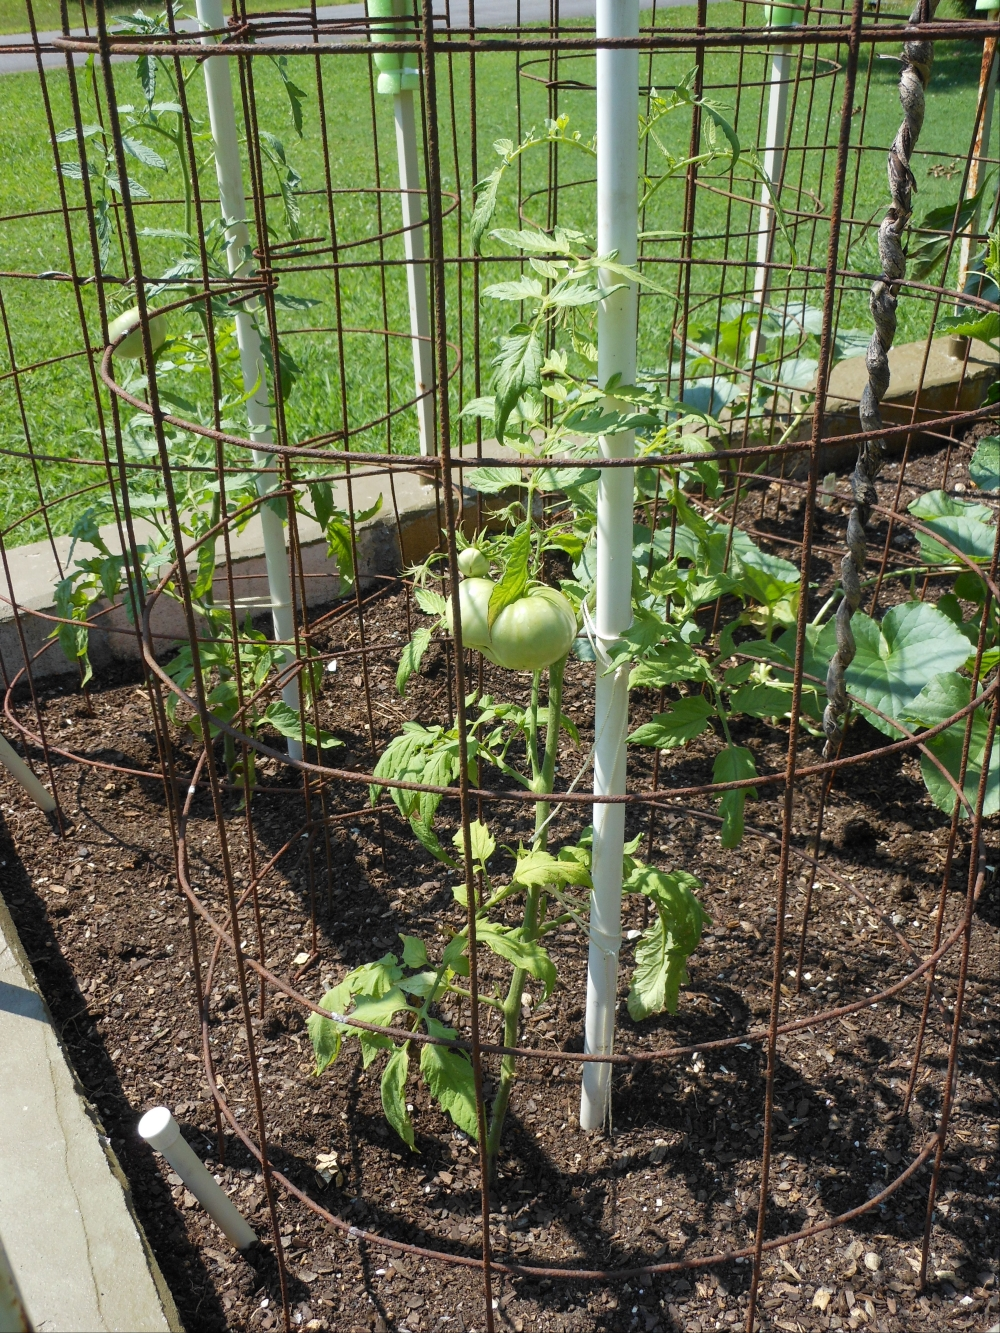 07-11-14_Just_Planted_Beefsteak_Tomato_Plants_01